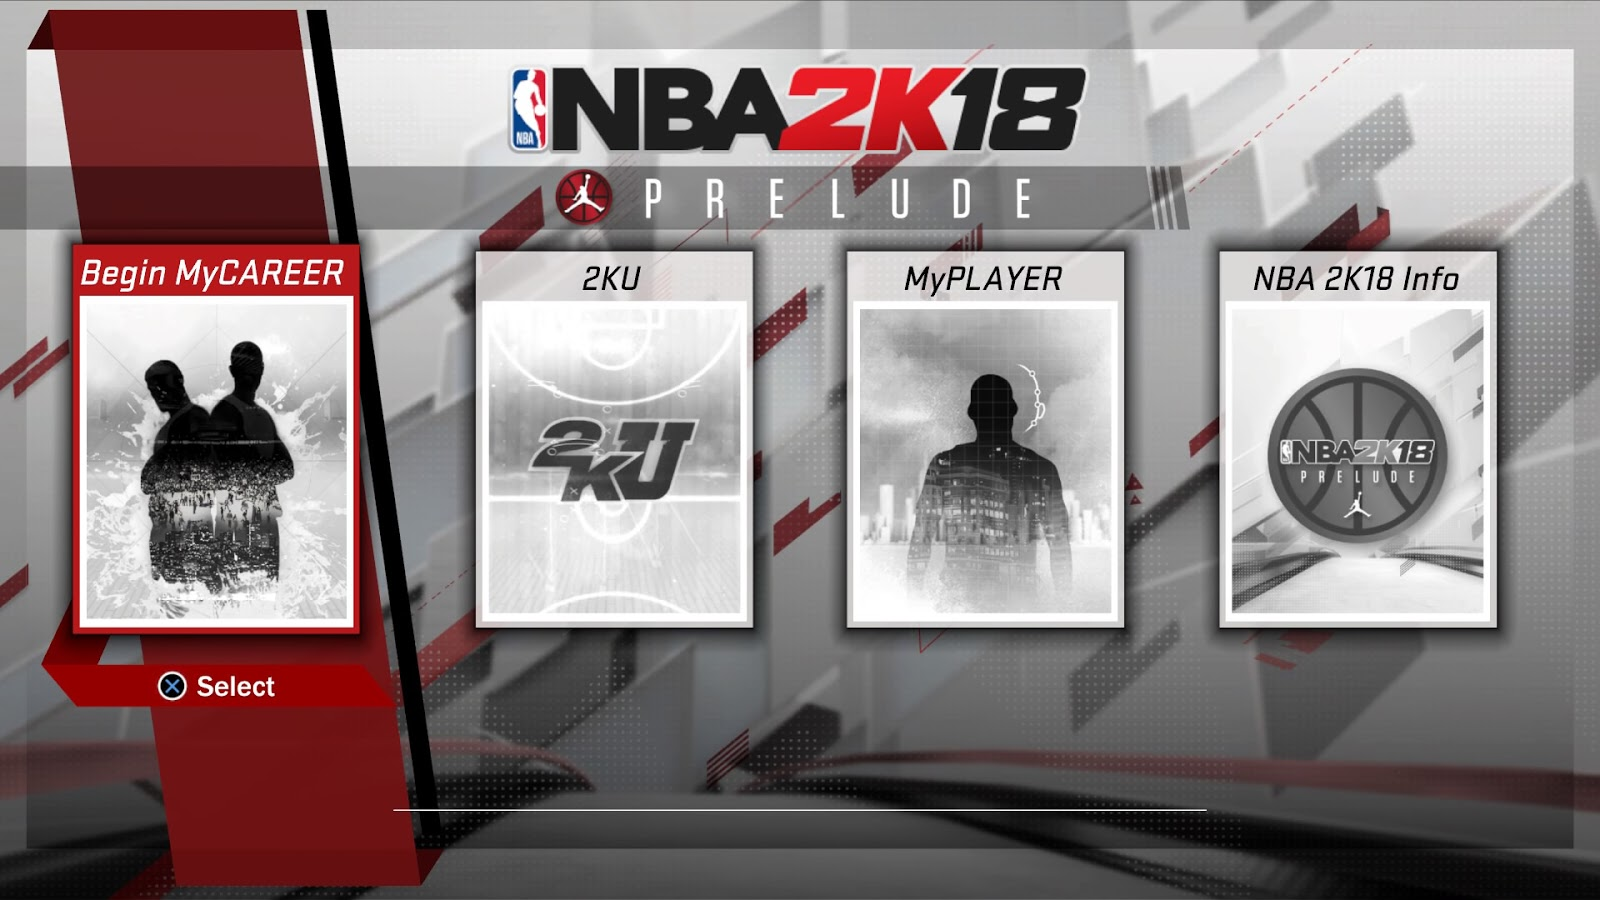 NBA 2K18: The Prelude' is now available on PS4 and Xbox One - NBA2K ORG